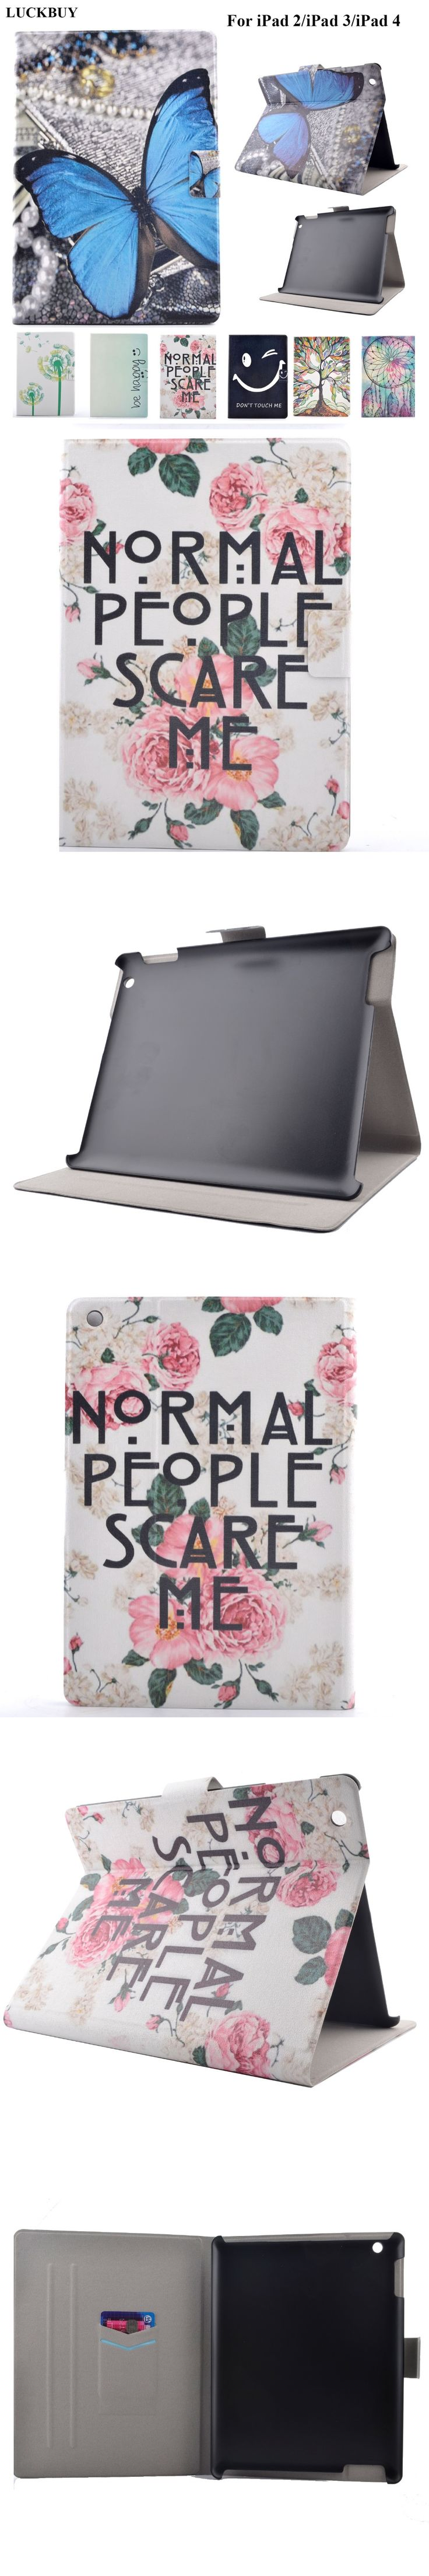 LUCKBUY For ipad 4 3 2 PU Leather Scare me Butterfly Rose flower smart tablet Cover Smart Stand For APPLE iPad 2 3 4 Tablet Case